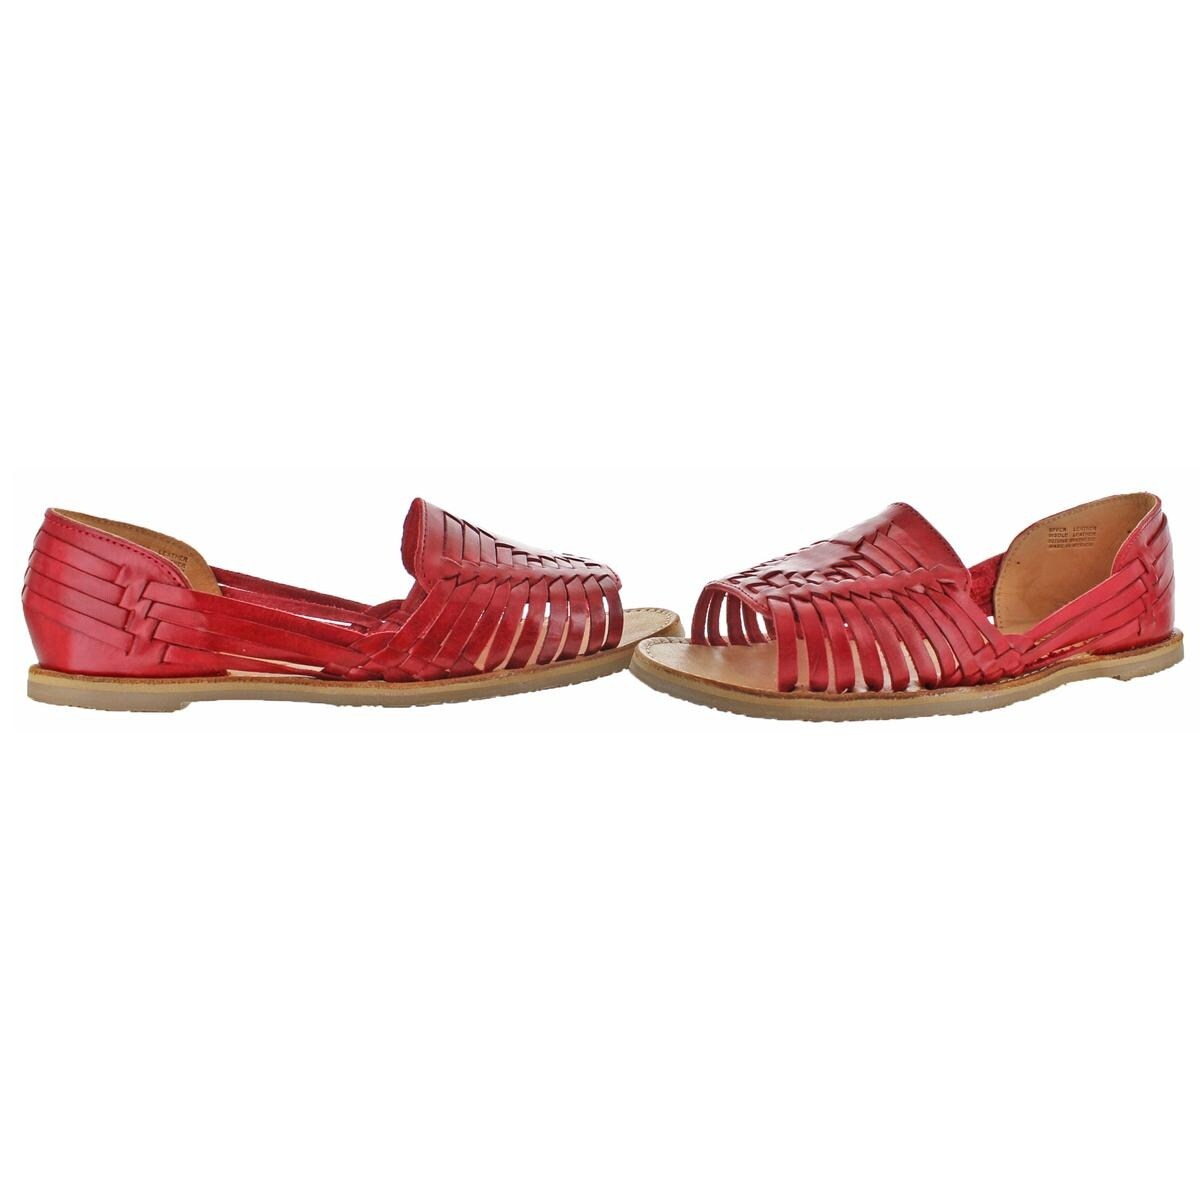 7a5c407eba8a Shop Sbicca Womens Jared Huarache Peep Toe Woven - Free Shipping On Orders  Over  45 - Overstock - 21034487